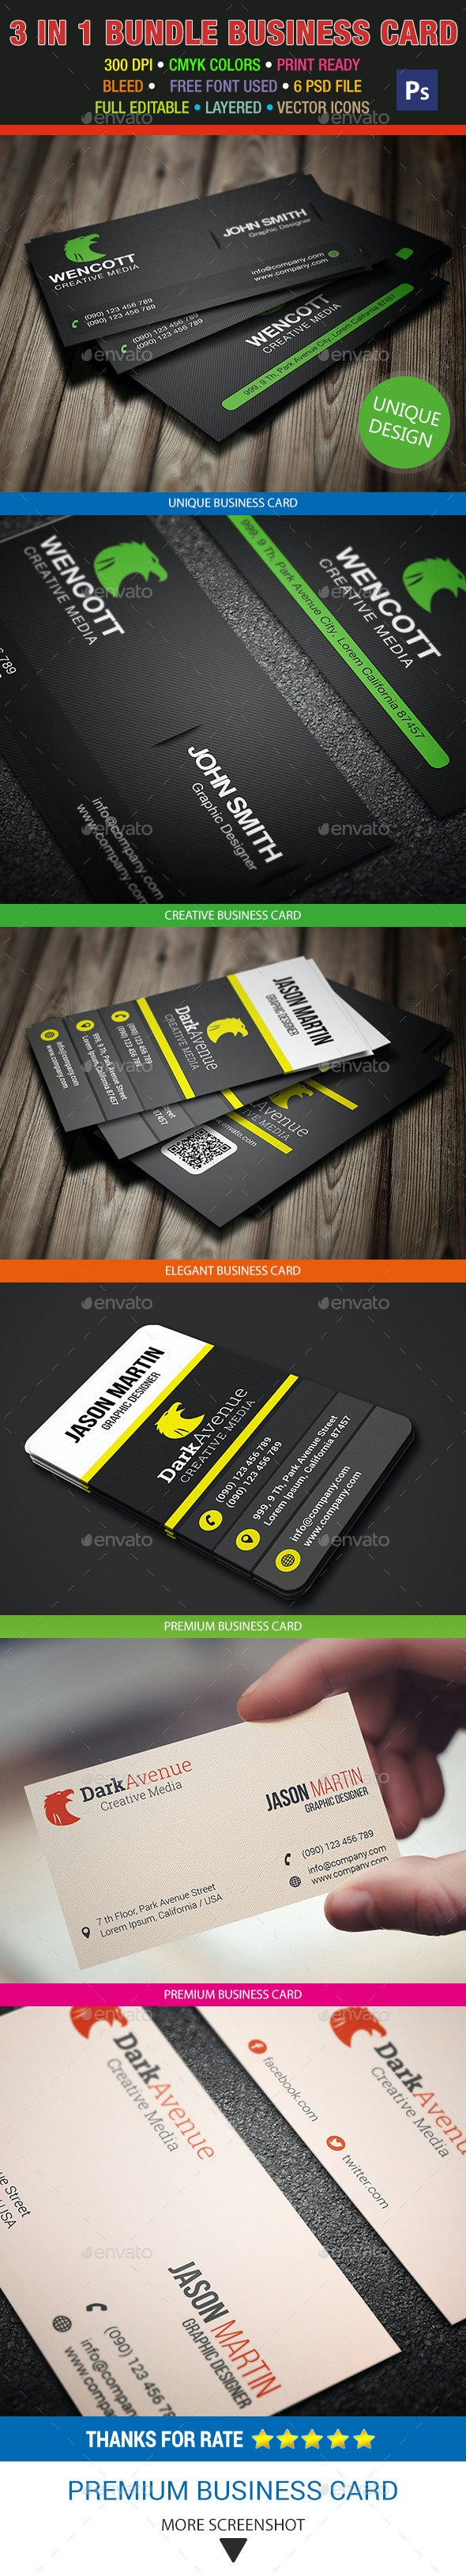 3 in 1 Creative Business Card Bundle 21 - Creative Business Cards